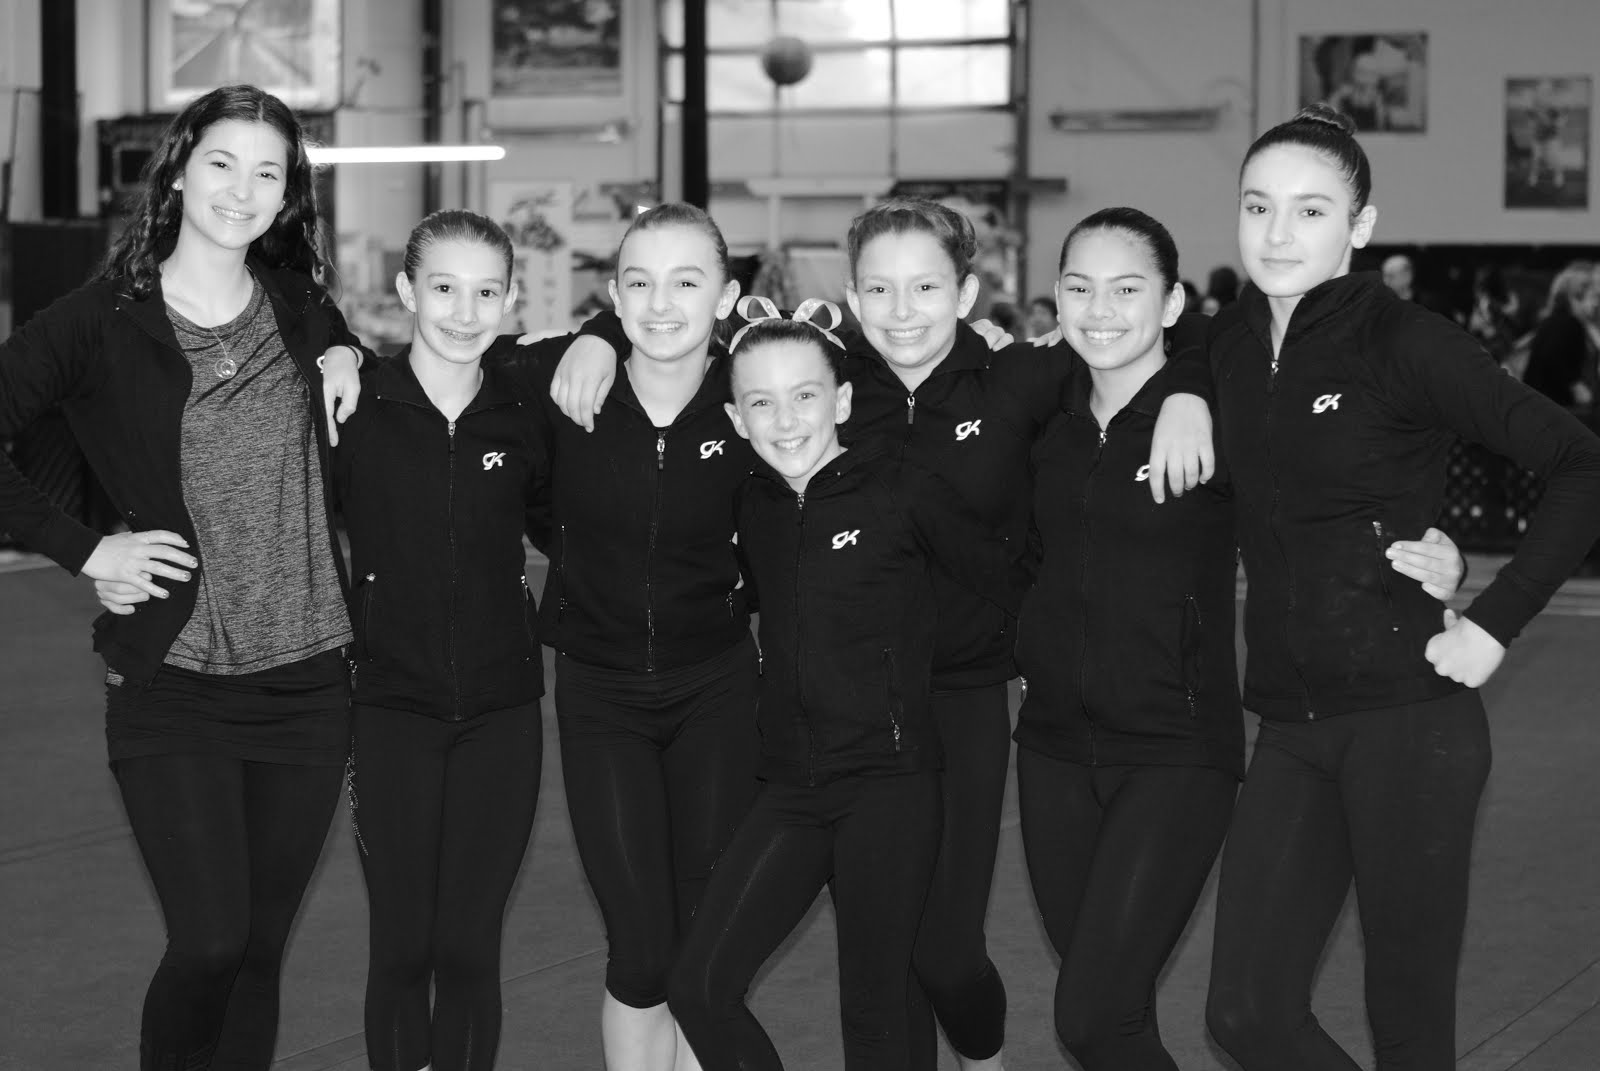 2016 Level 6/7 Junior Olympic Team